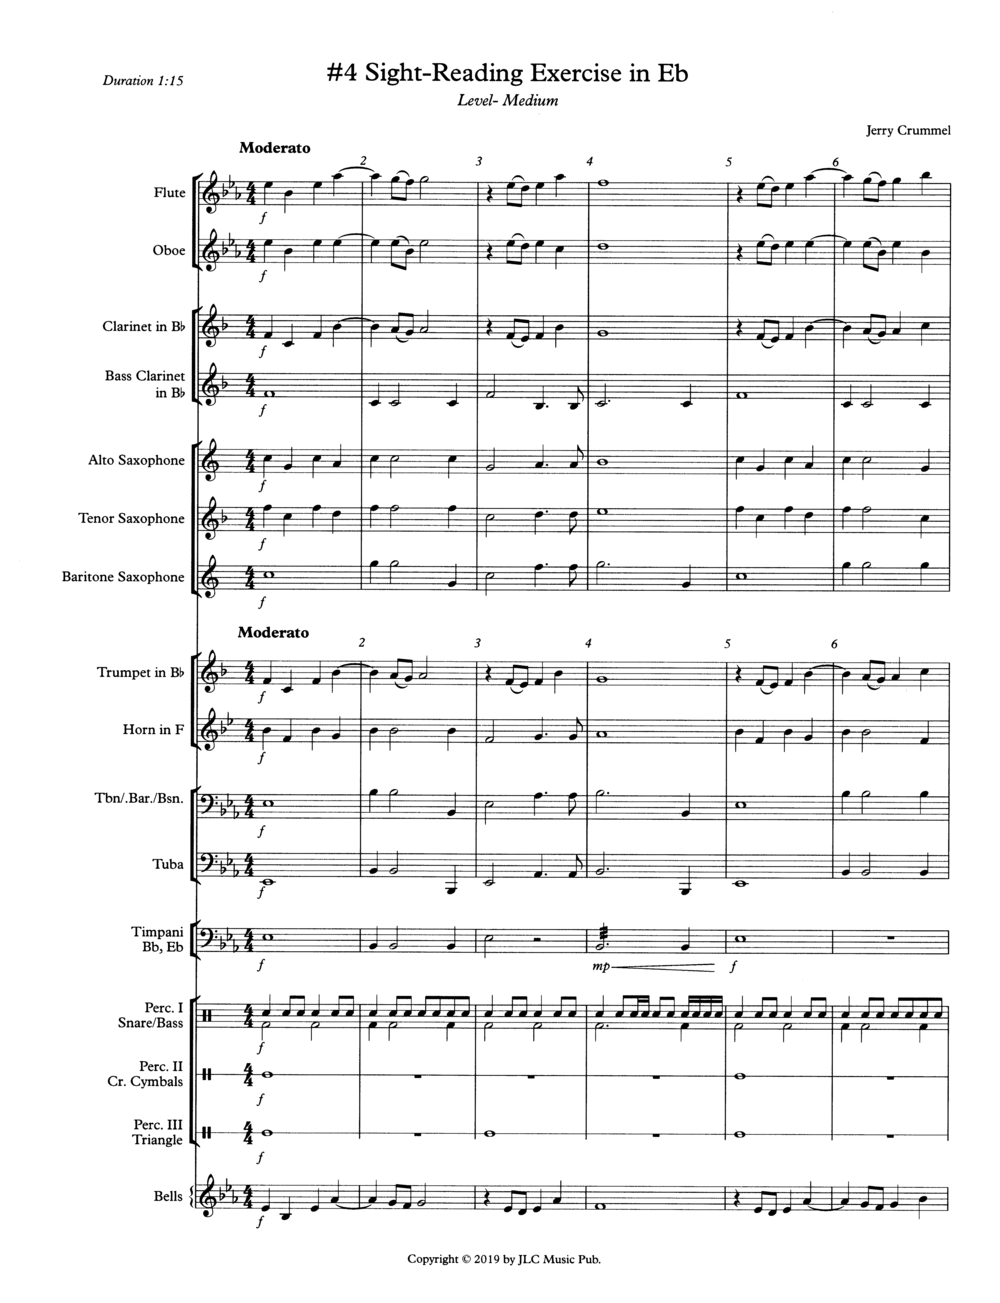 #4 Sight-Reading Exercise in Eb02122019.png